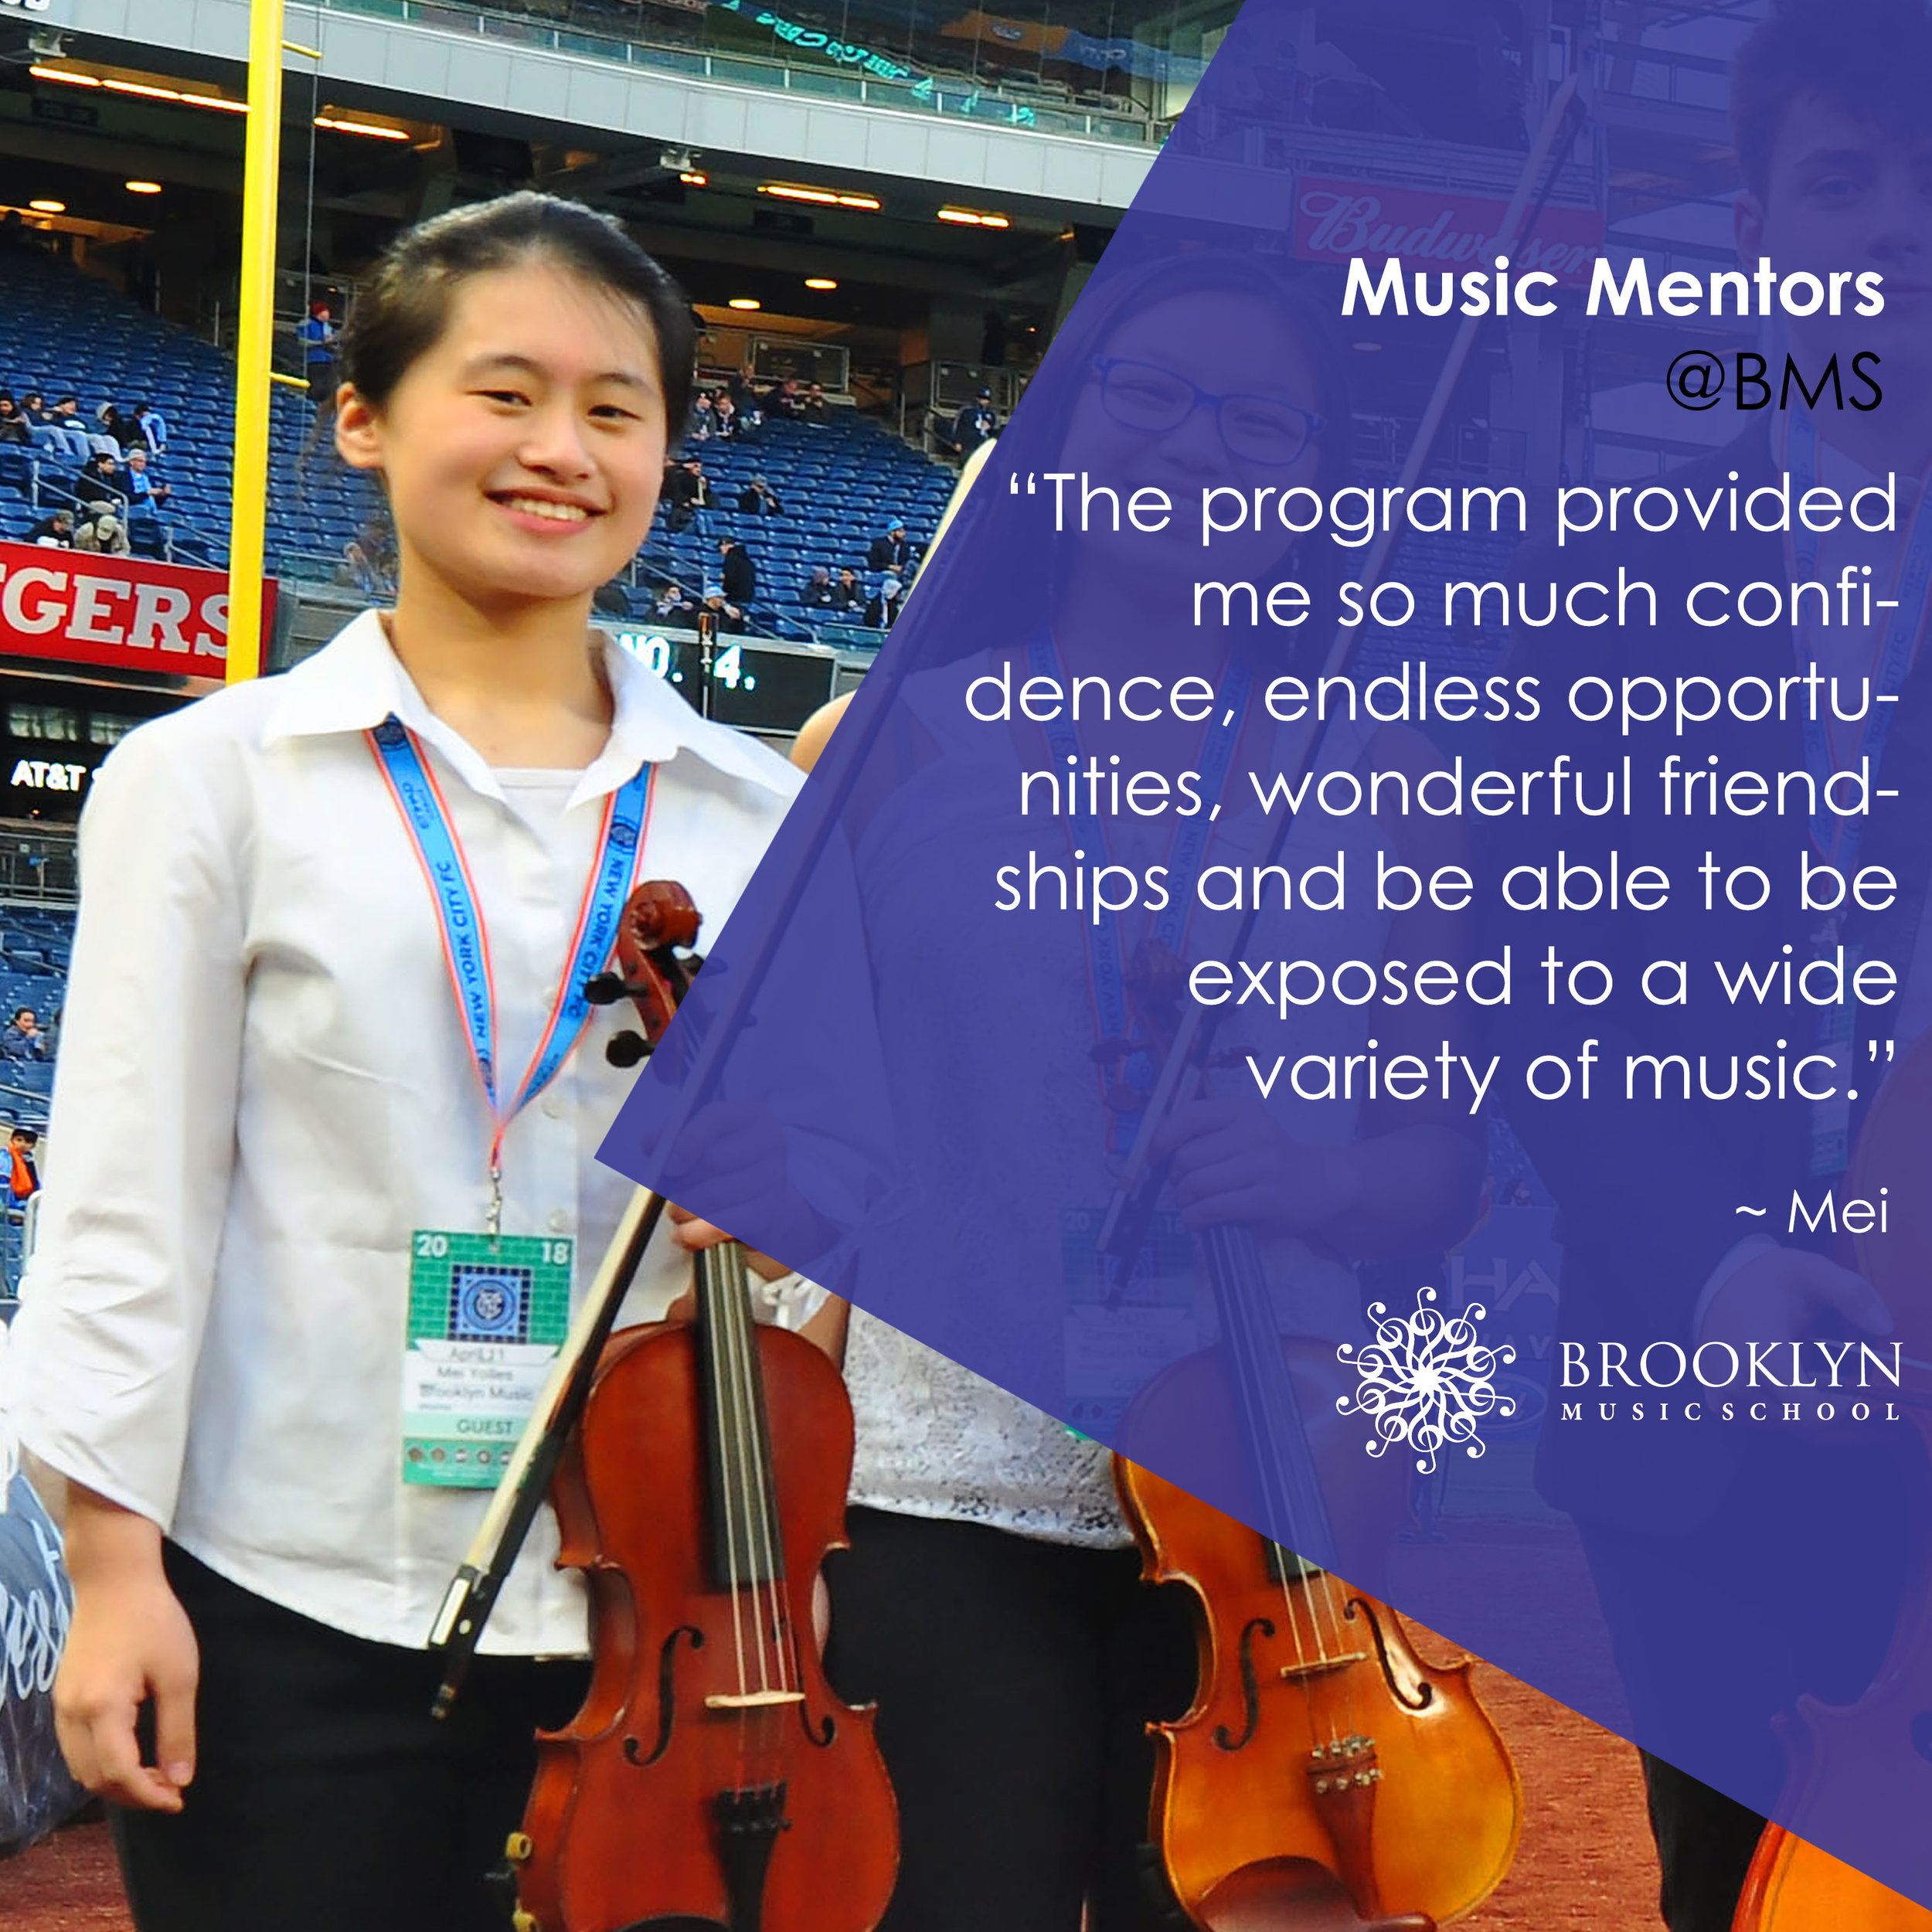 MEI (Violin)  - The Brooklyn Music School's Mentor Program means so much to me. The program provided me so much confidence, endless opportunities, wonderful friendships and be able to be exposed to a wide variety of music. I wouldn't have known a lot about jazz, blues and many different contemporary music. For me, I only know popular music and classical music and haven't been given an opportunity to analyze each music. I really enjoy working with kids and share my passion of music to the younger students. I haven't taught anyone anything before and being like a mentor in the classes gave me confidence on my secondary instrument, violin.I really enjoy helping out with concerts. Helping out in the TCS Marathon and monthly concerts was extremely interesting. Being able to mingle with other mentors really improve my morning? skills. Without this mentor program, my confidence level wouldn't be that high. Especially playing music because I've always been judged by my peers. But this program really changed that. The opportunities here or endless. Being able to work with successful adults and musicians is a great way to gain more connections which is very important in my future, especially when I need to find jobs. The wonderful times I have while working with other mentors in my quartet is indescribable. Being in chamber music before, I didn't really enjoy as much because no one really took it seriously. This program also really helped me to time manage since I do a lot of other extracurricular activities. It also helped me to get all of my college recording done.